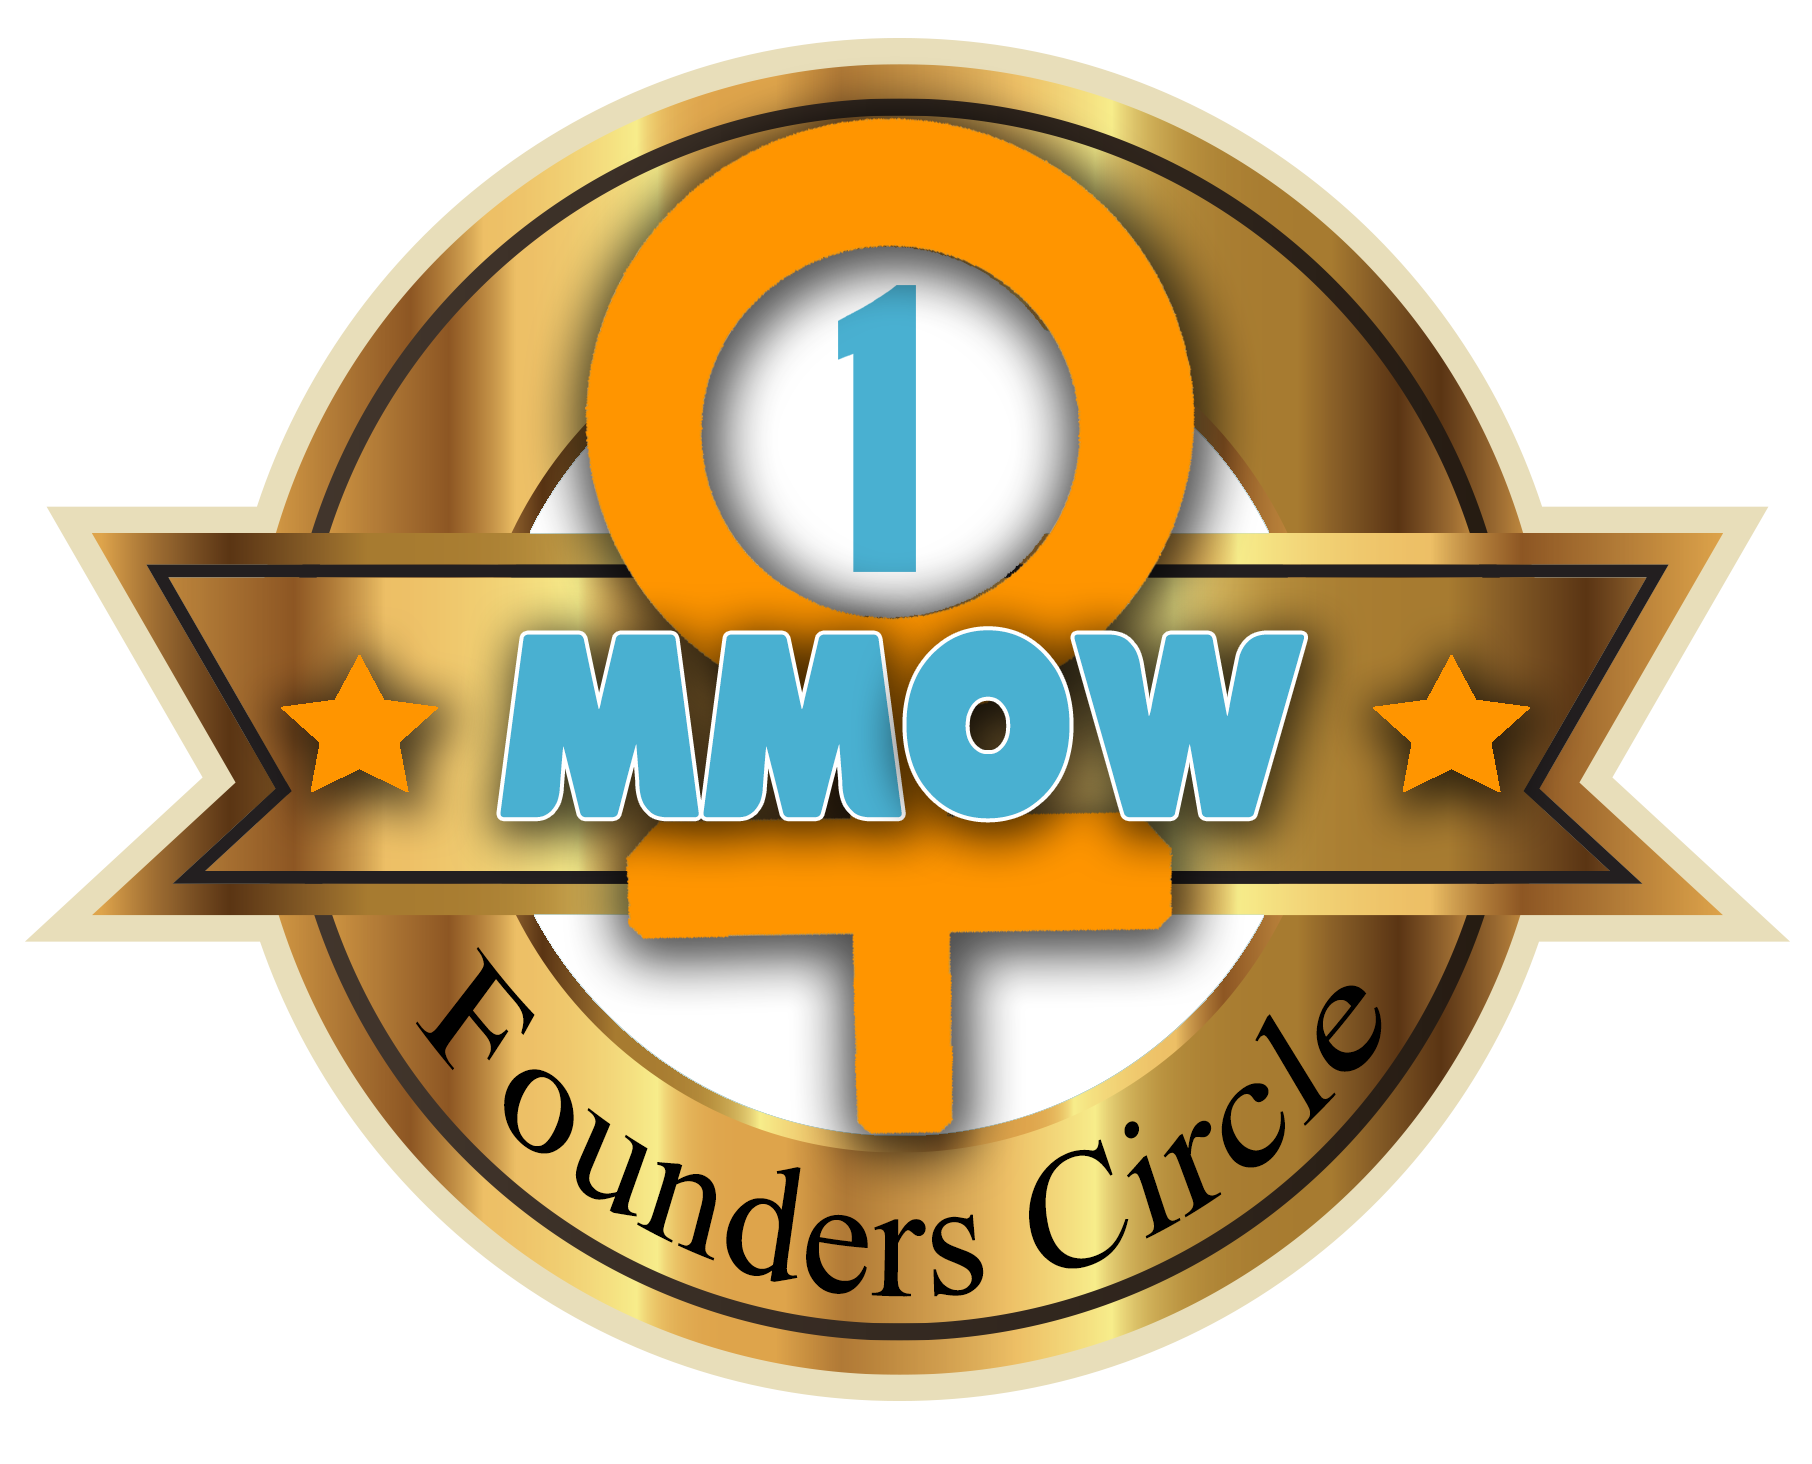 ommmow founders circle